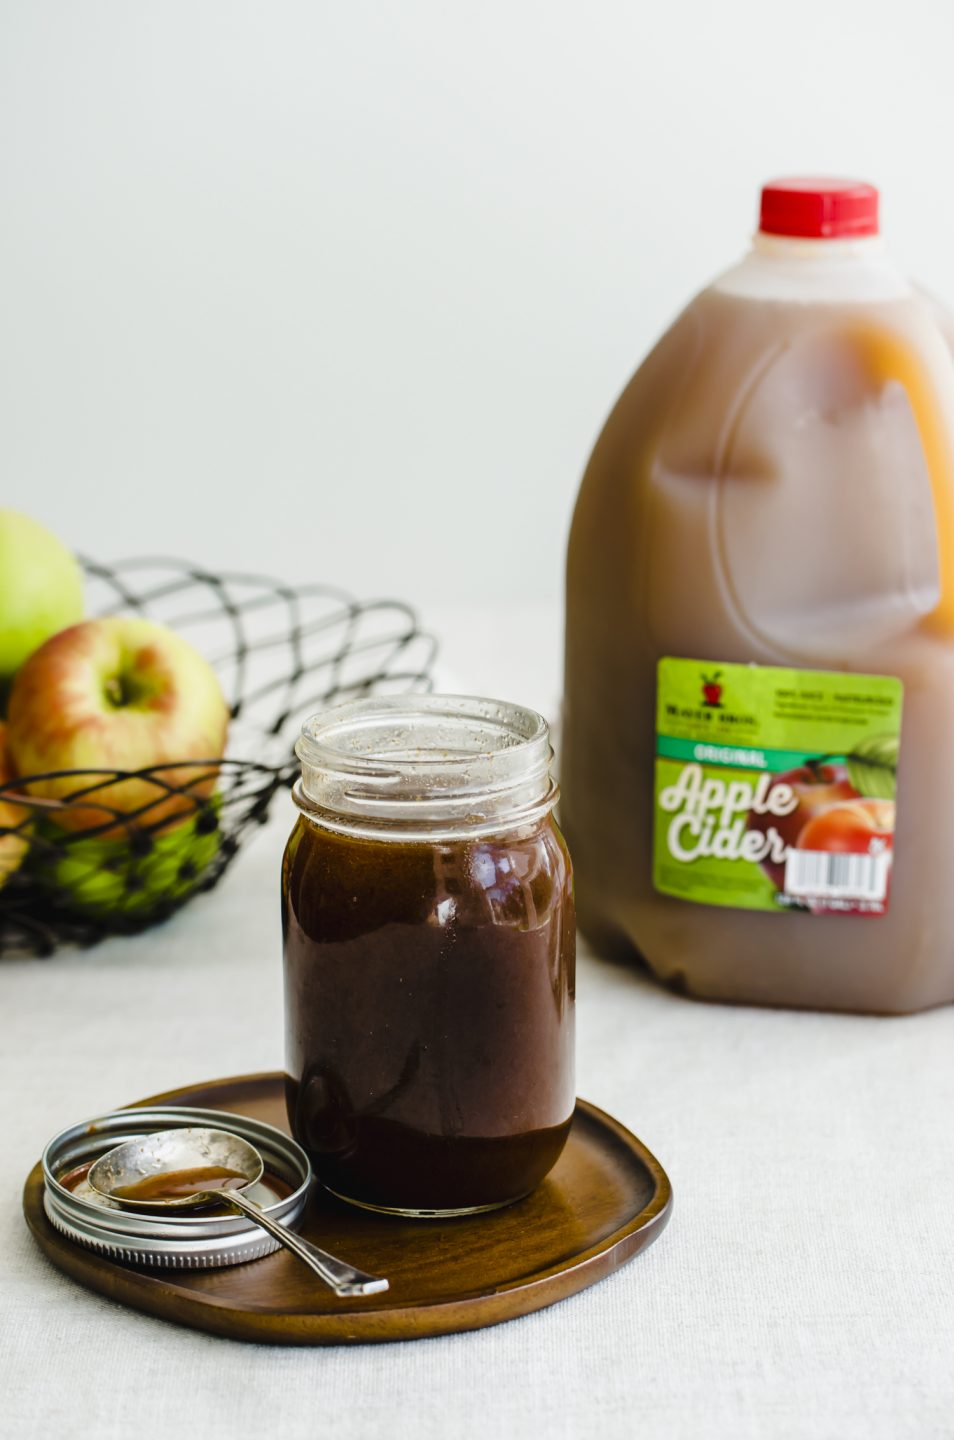 A jar of boiled apple cider syrup on a wooden plate with a jug of apple cider and a basket of fresh apples on the side.